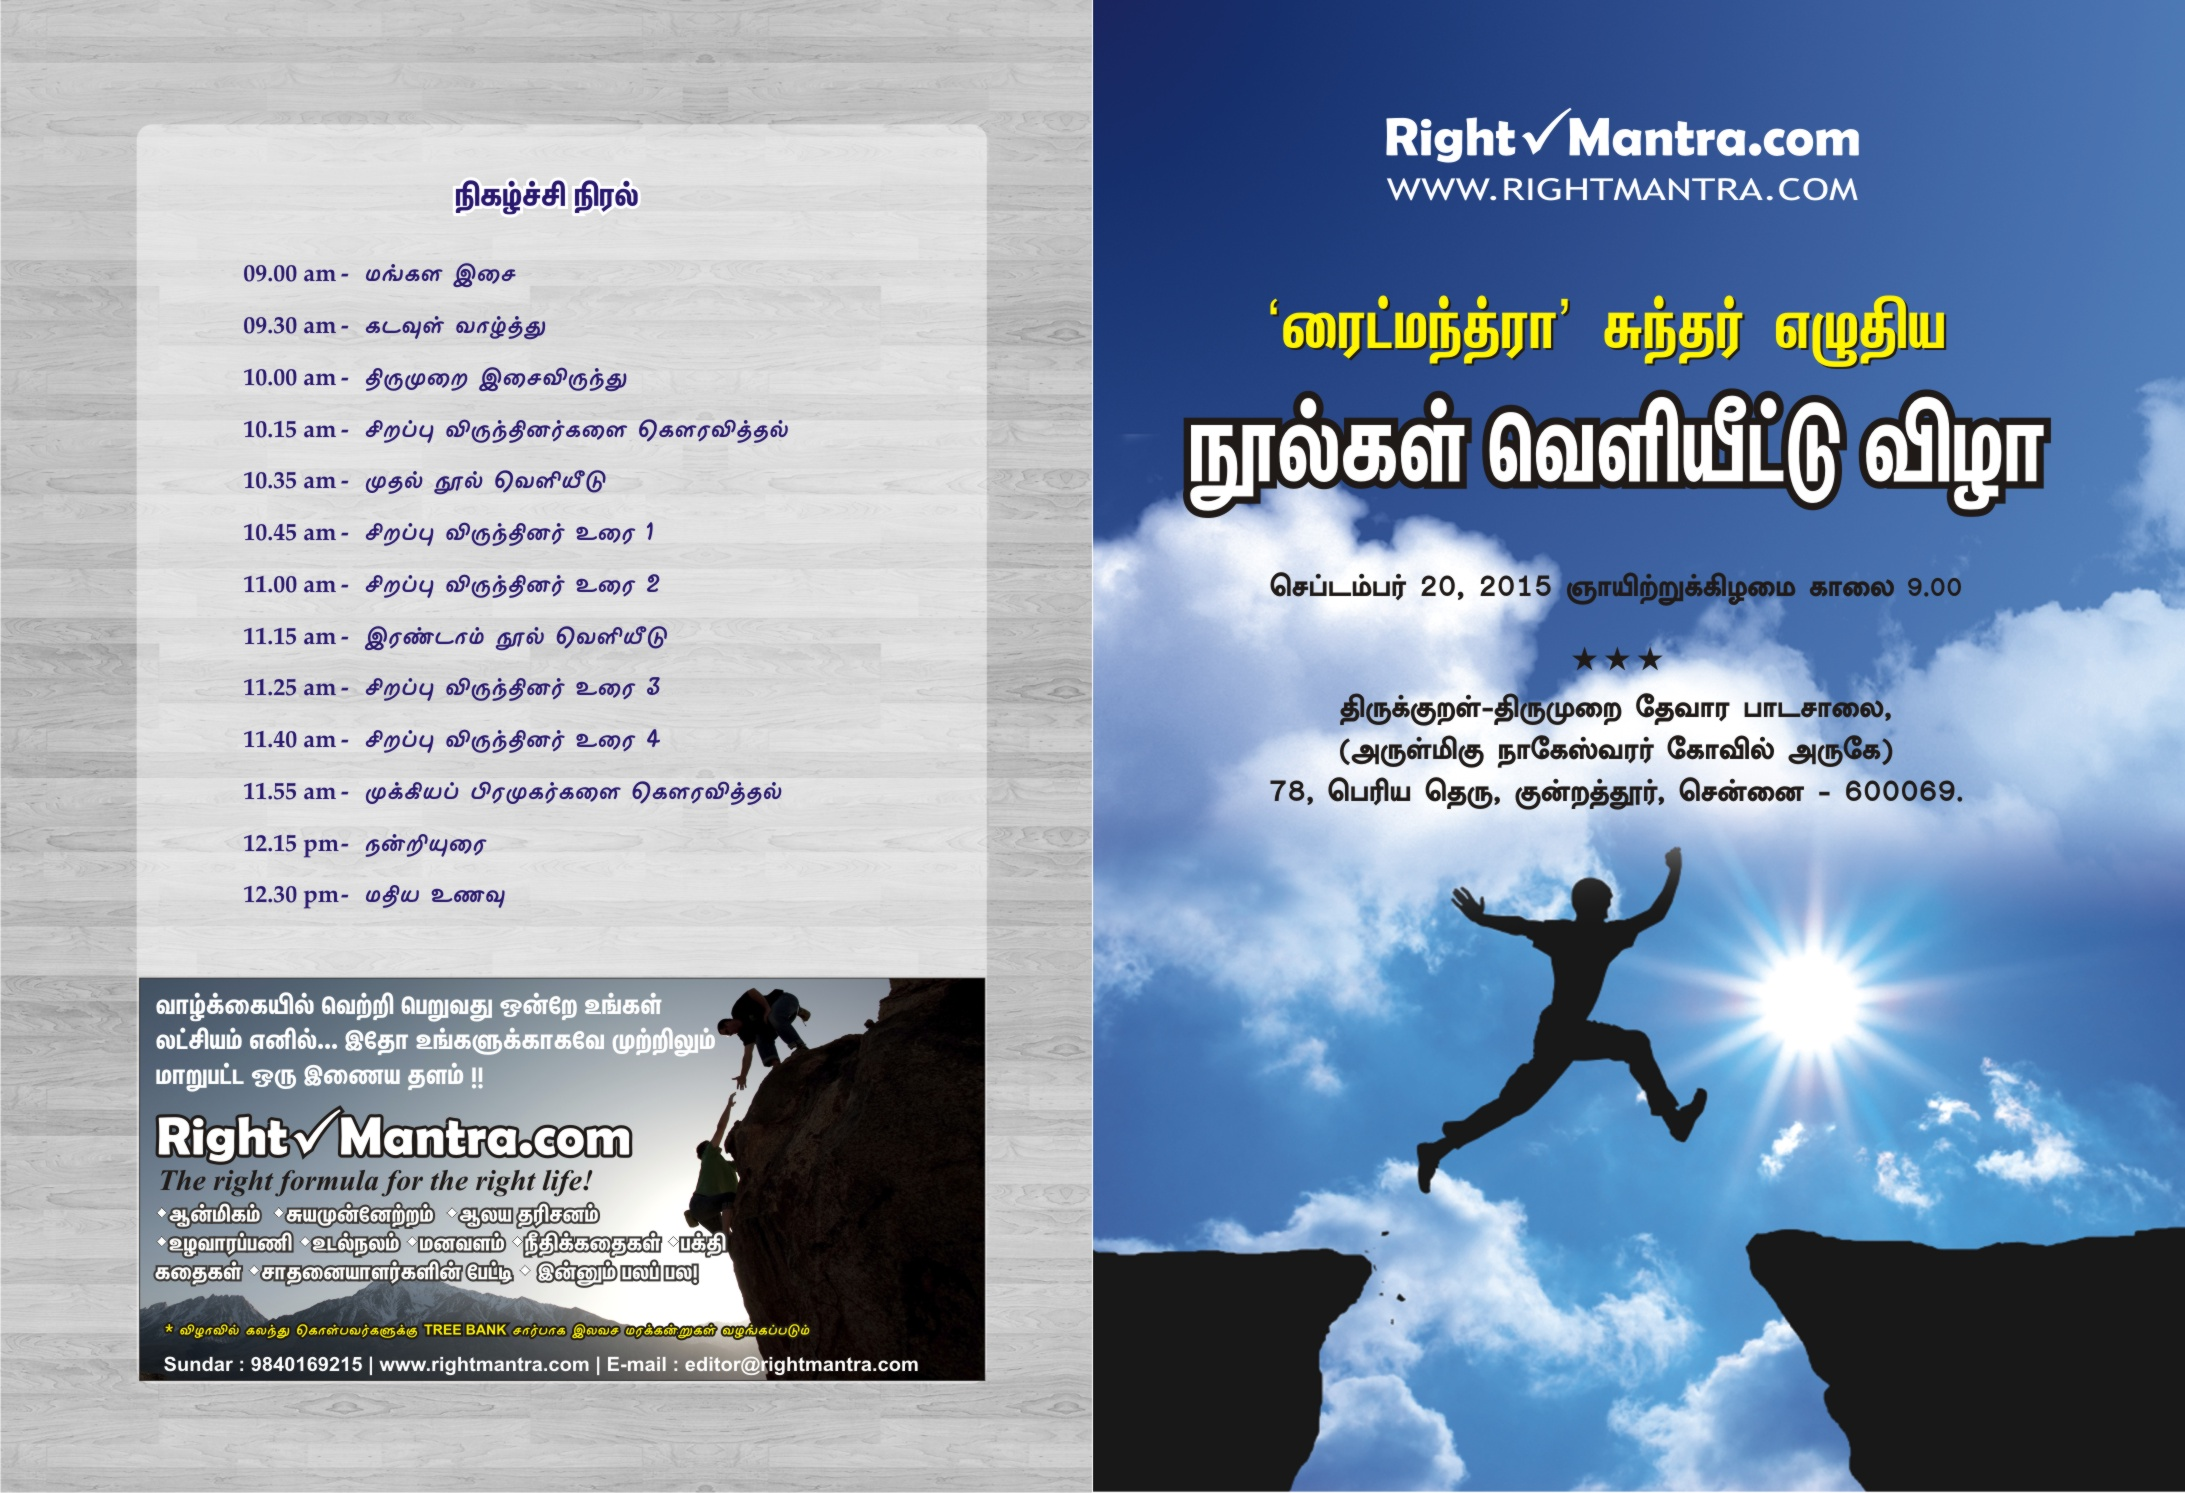 Rightmantra Invite 1